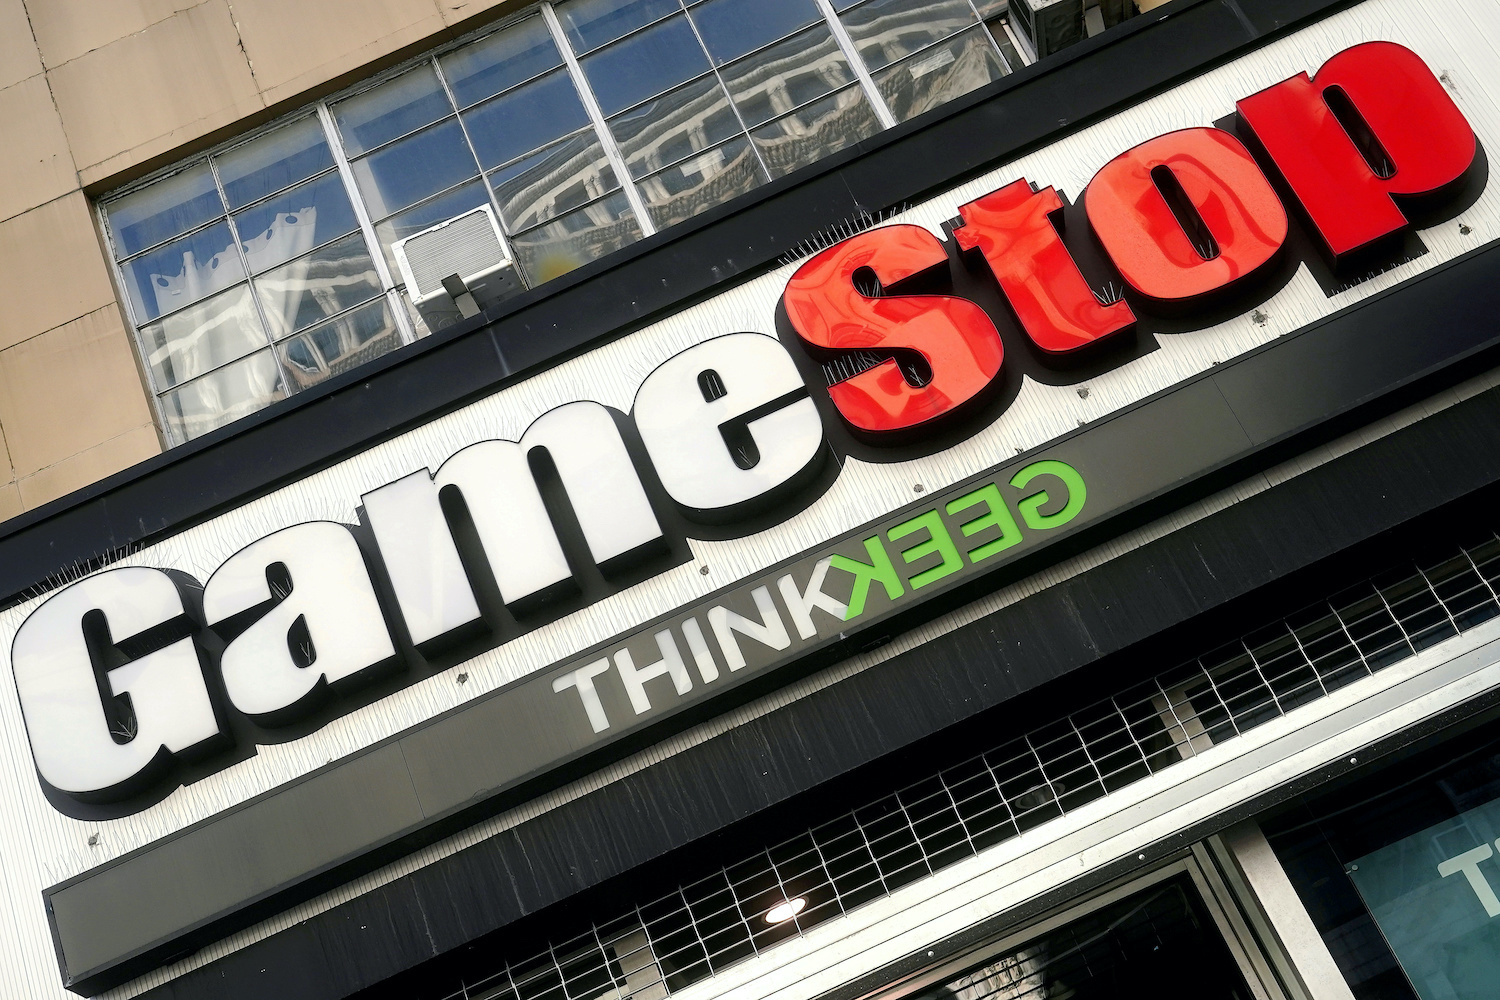 It's back! GameStop shares double on renewed retail buying